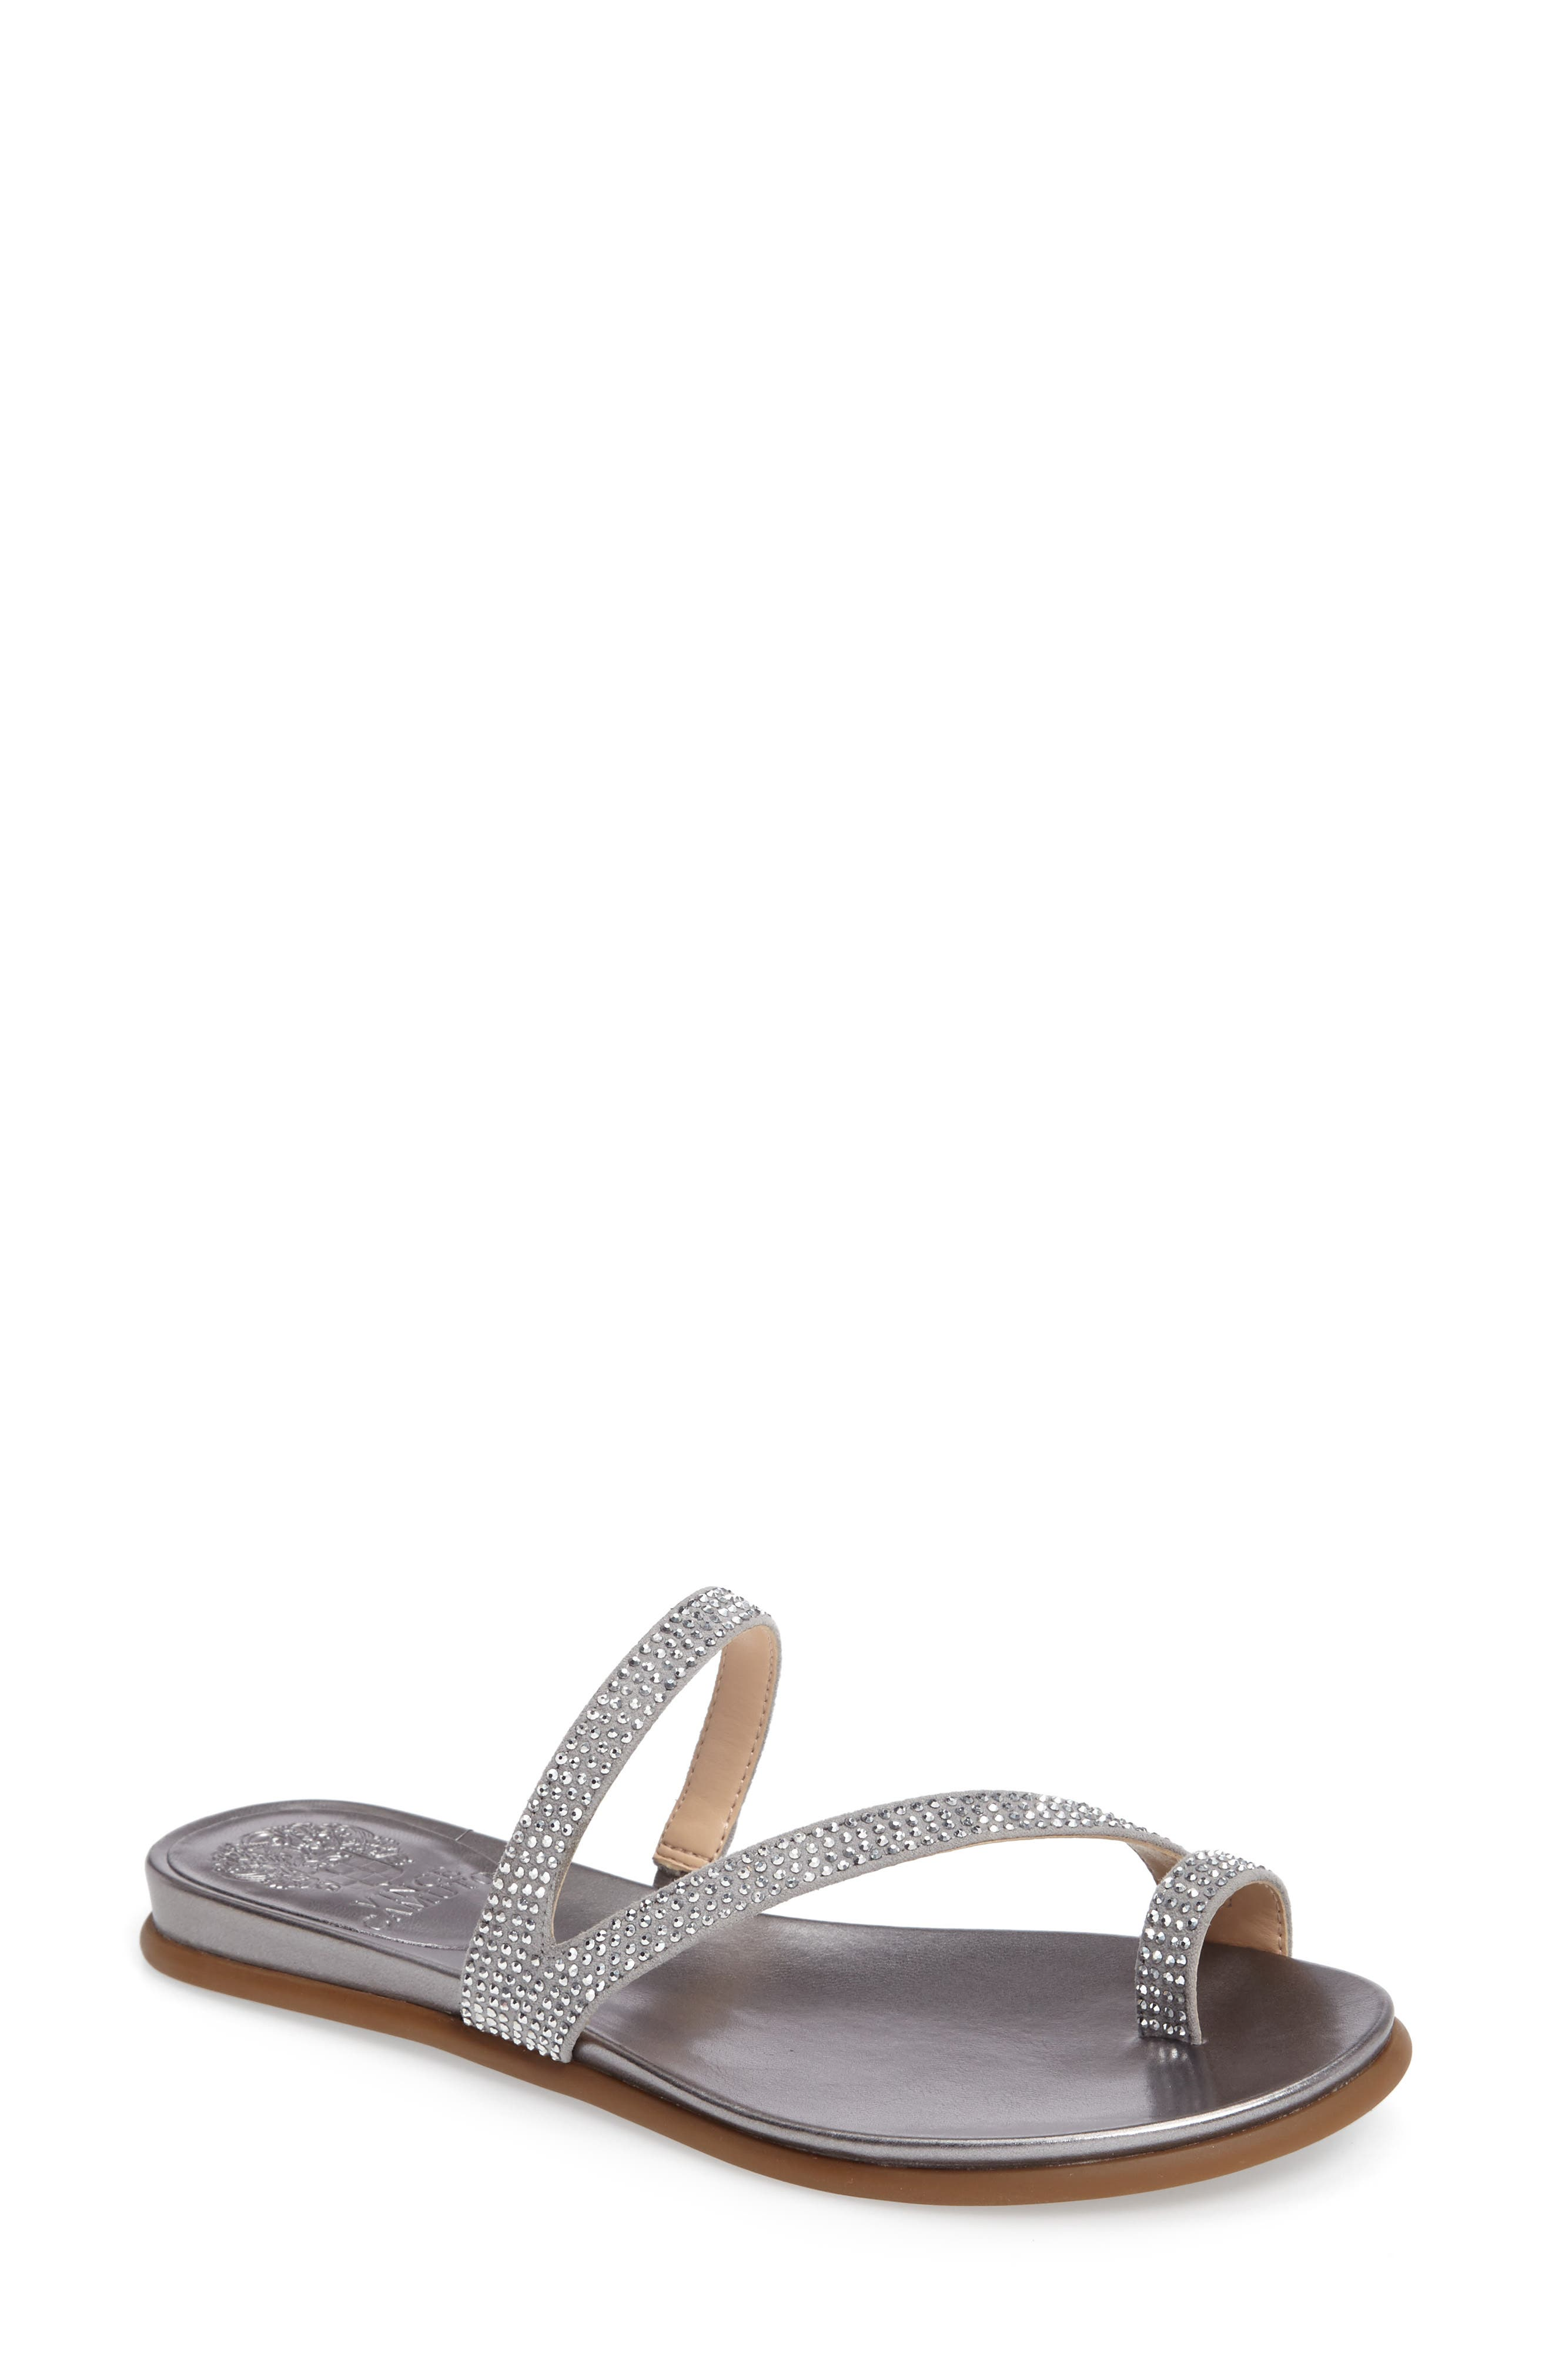 Alternate Image 1 Selected - Vince Camuto Evina Sandal (Women)